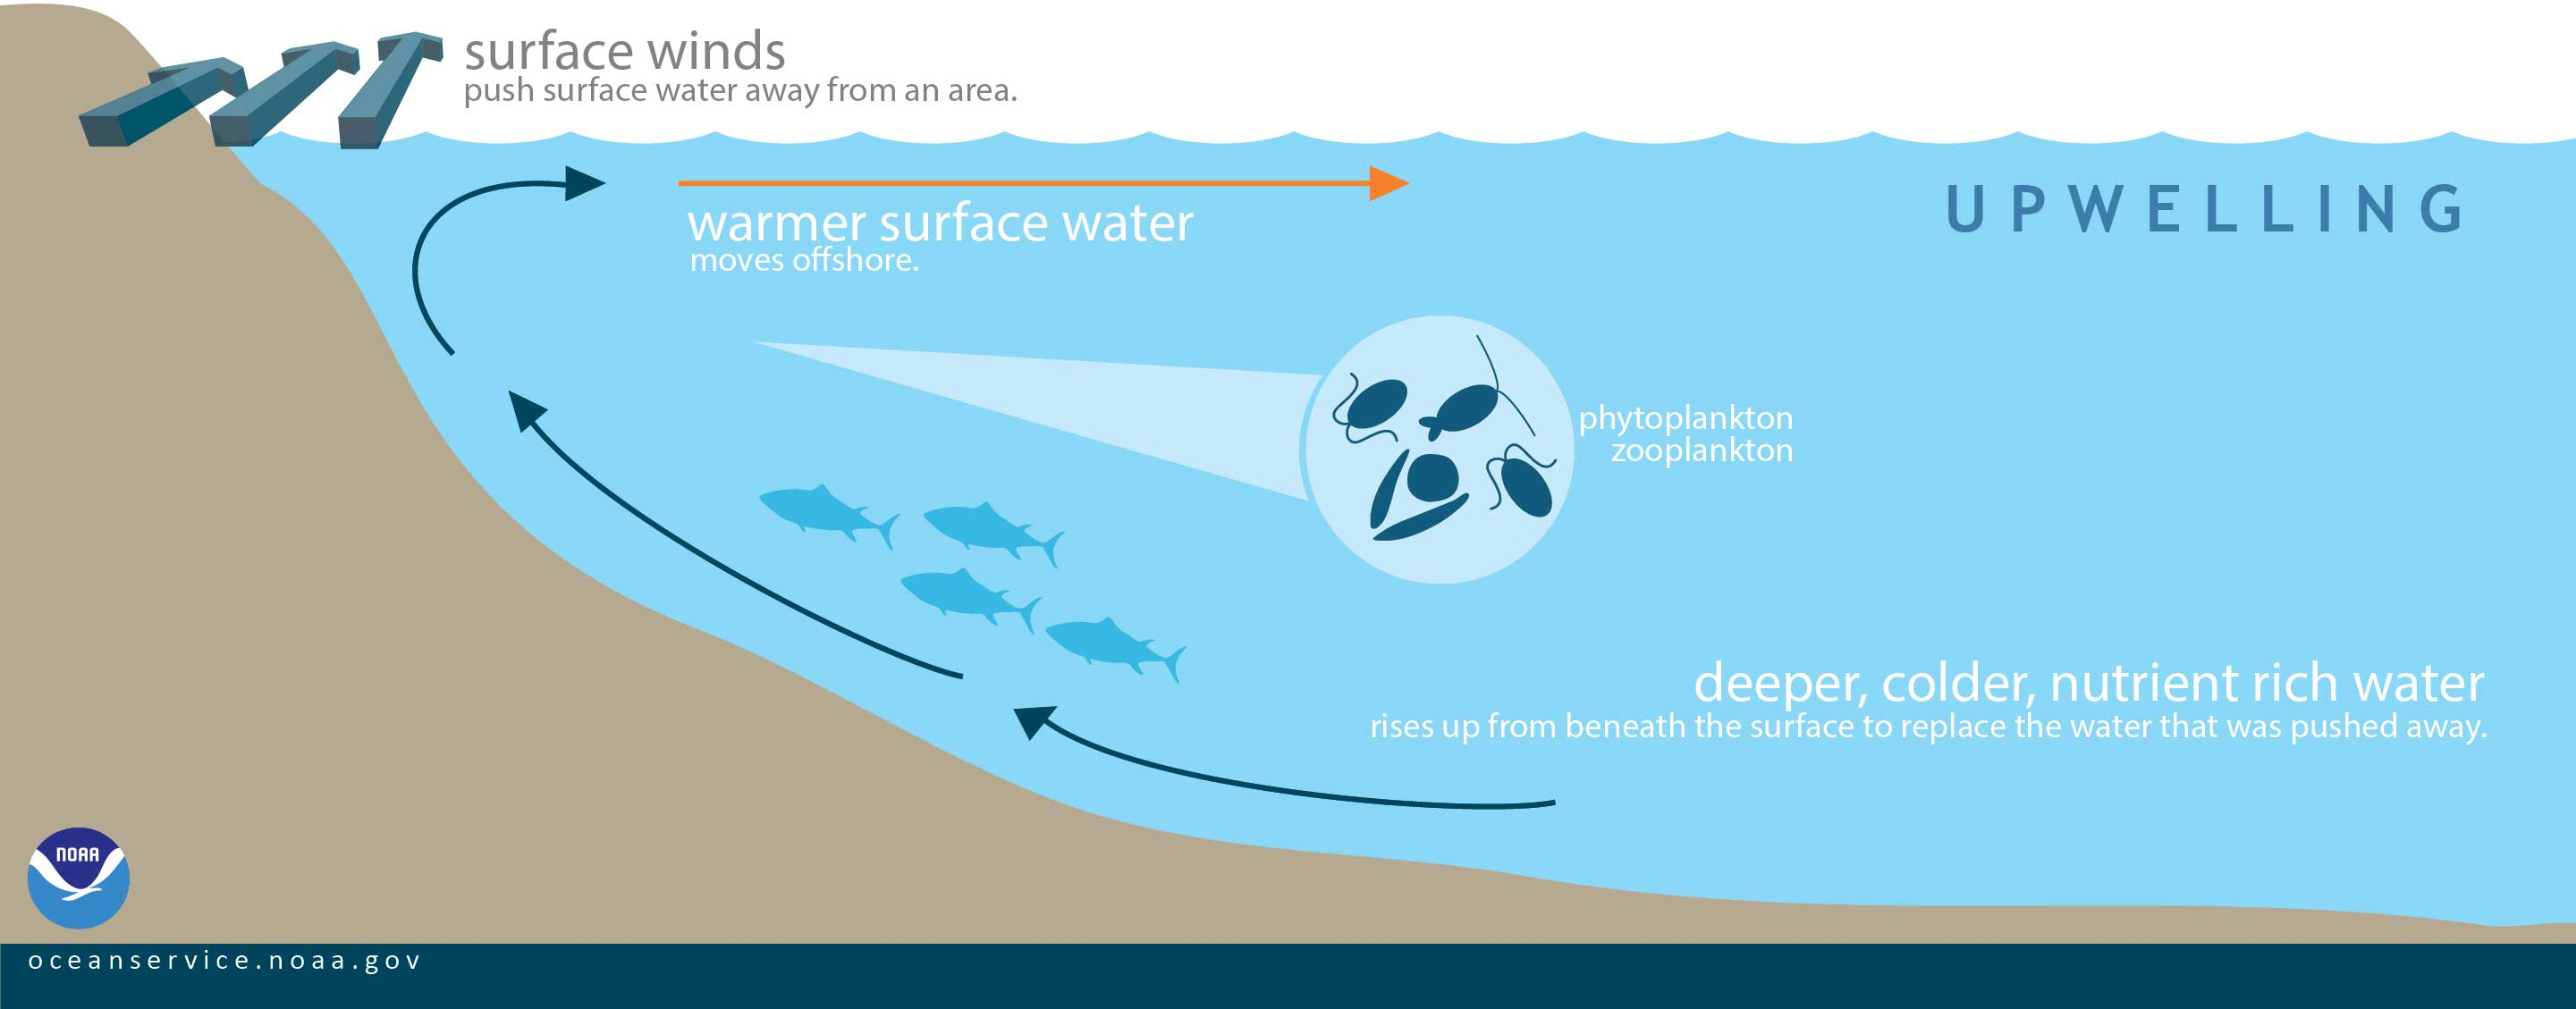 illustration of upwelling